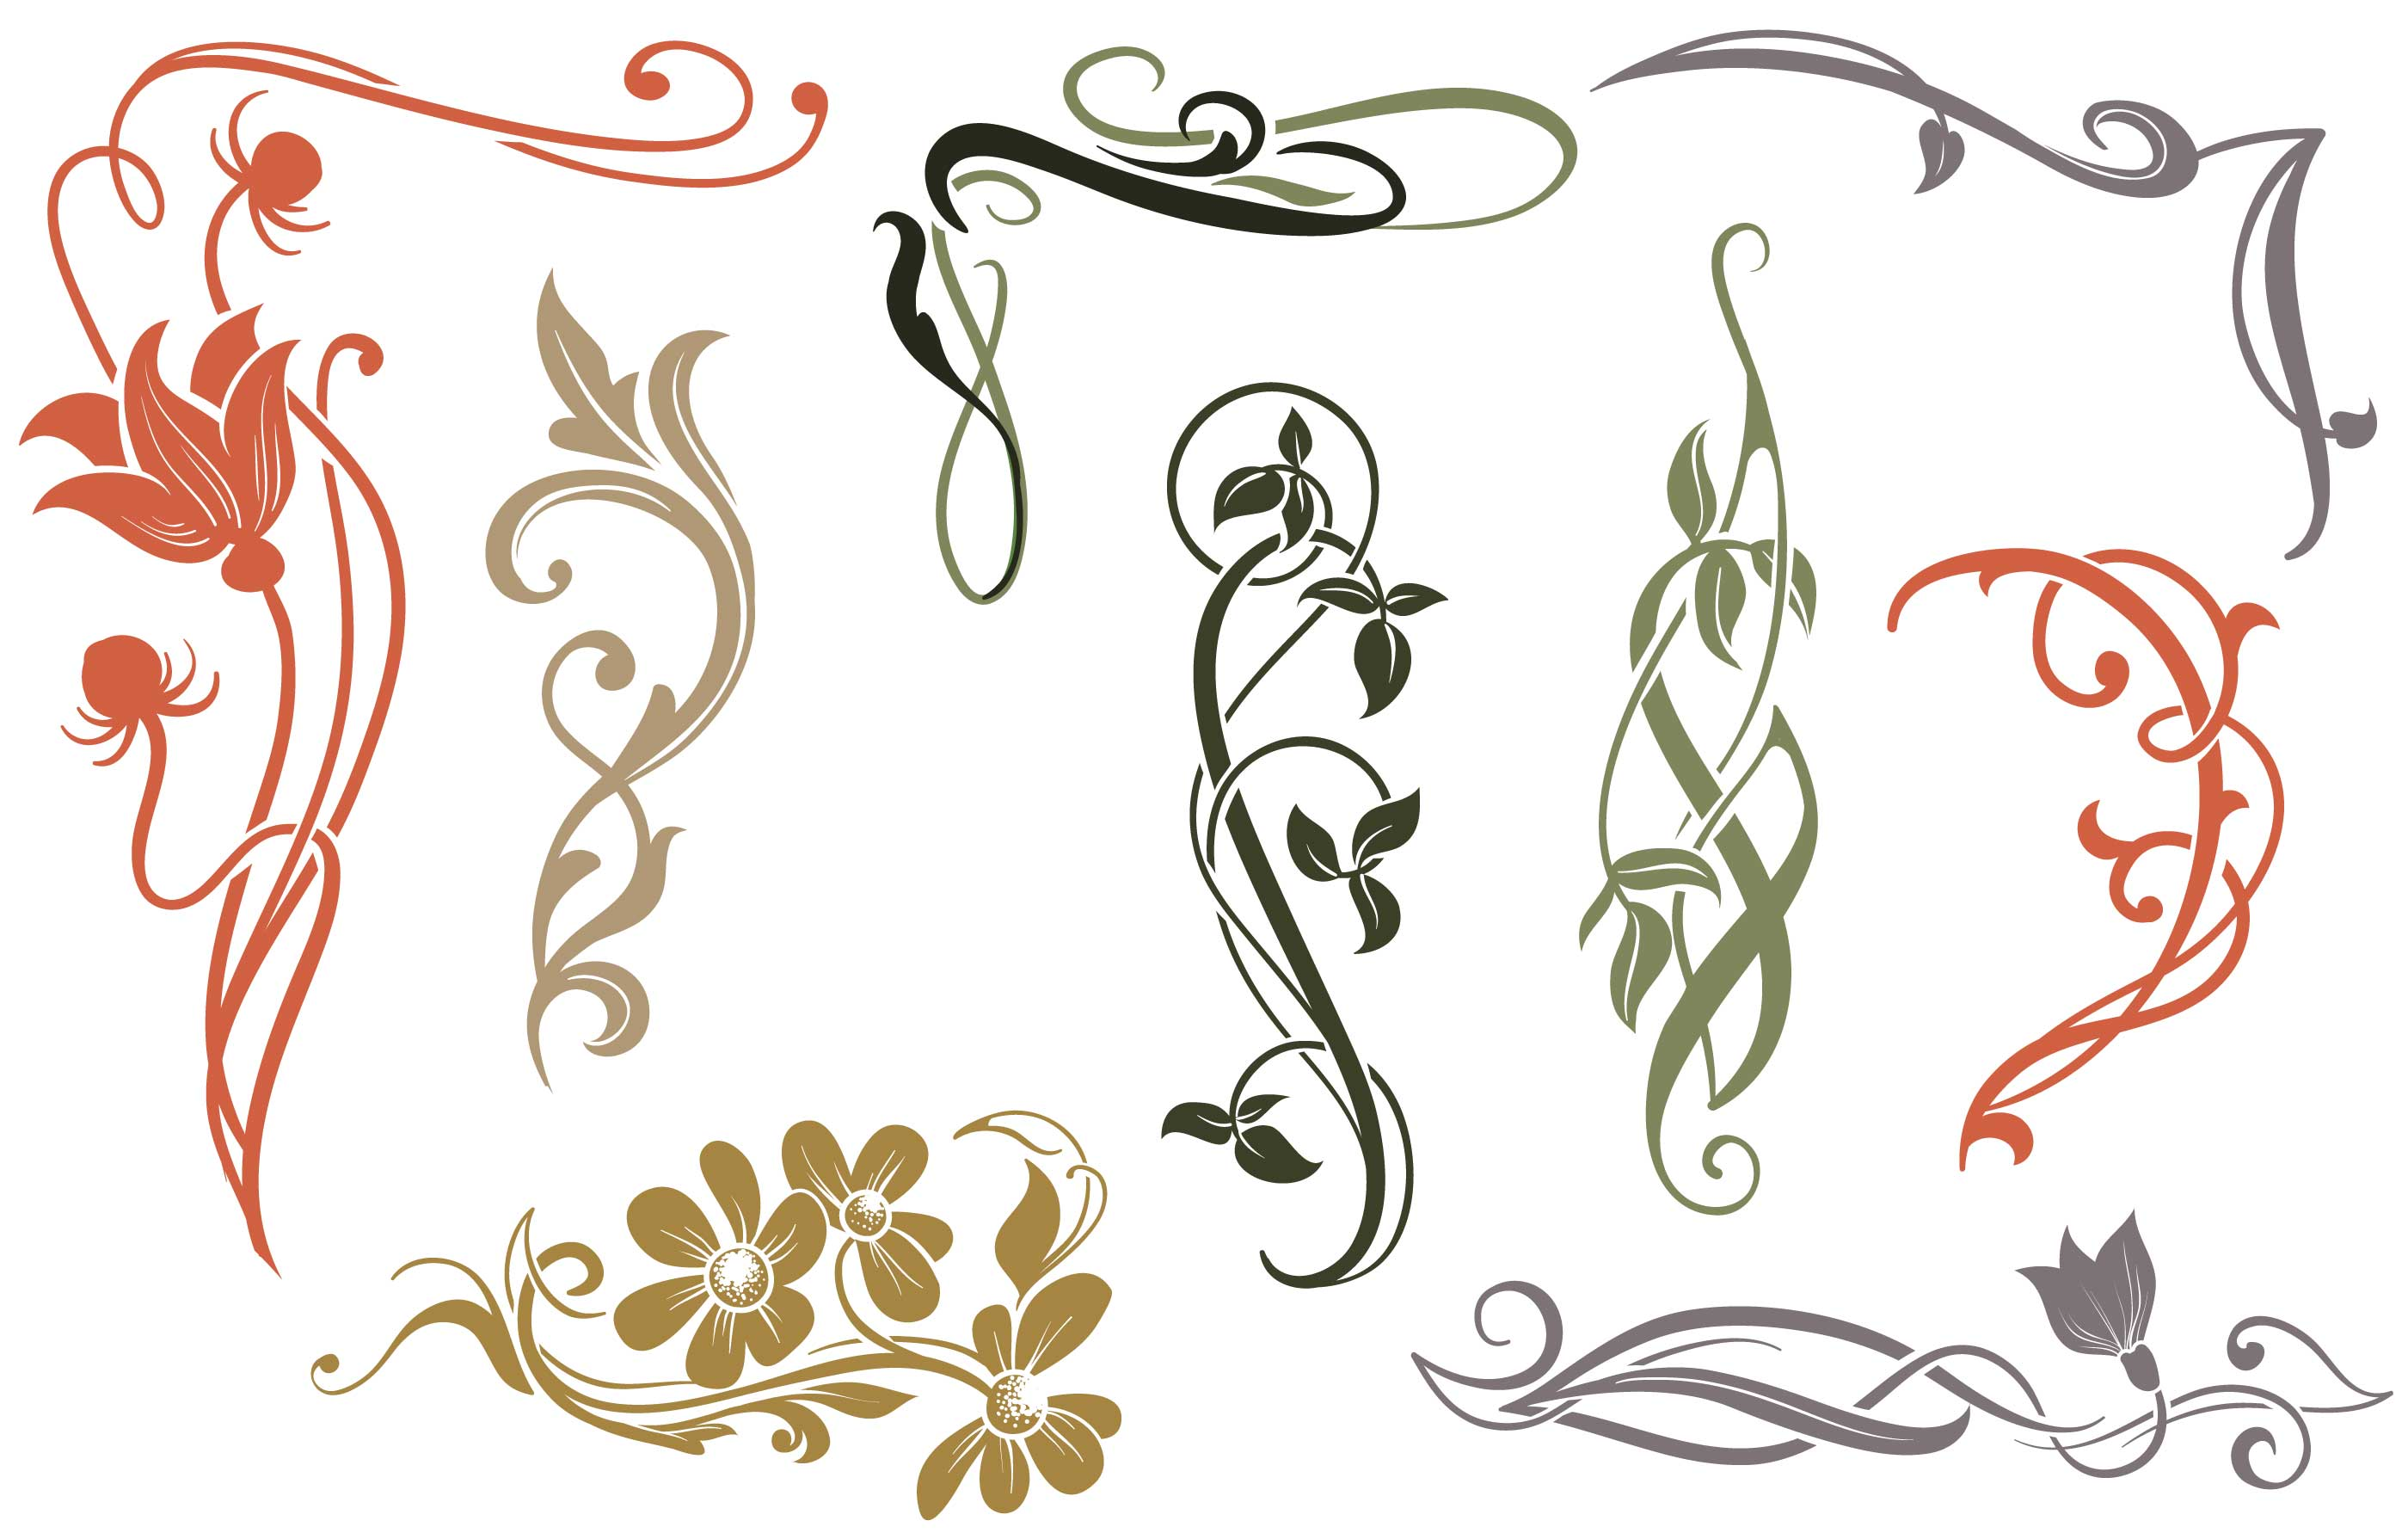 Jugendstil Kunst Art Nouveau Vectoren Download Gratis Vectorkunst En Andere